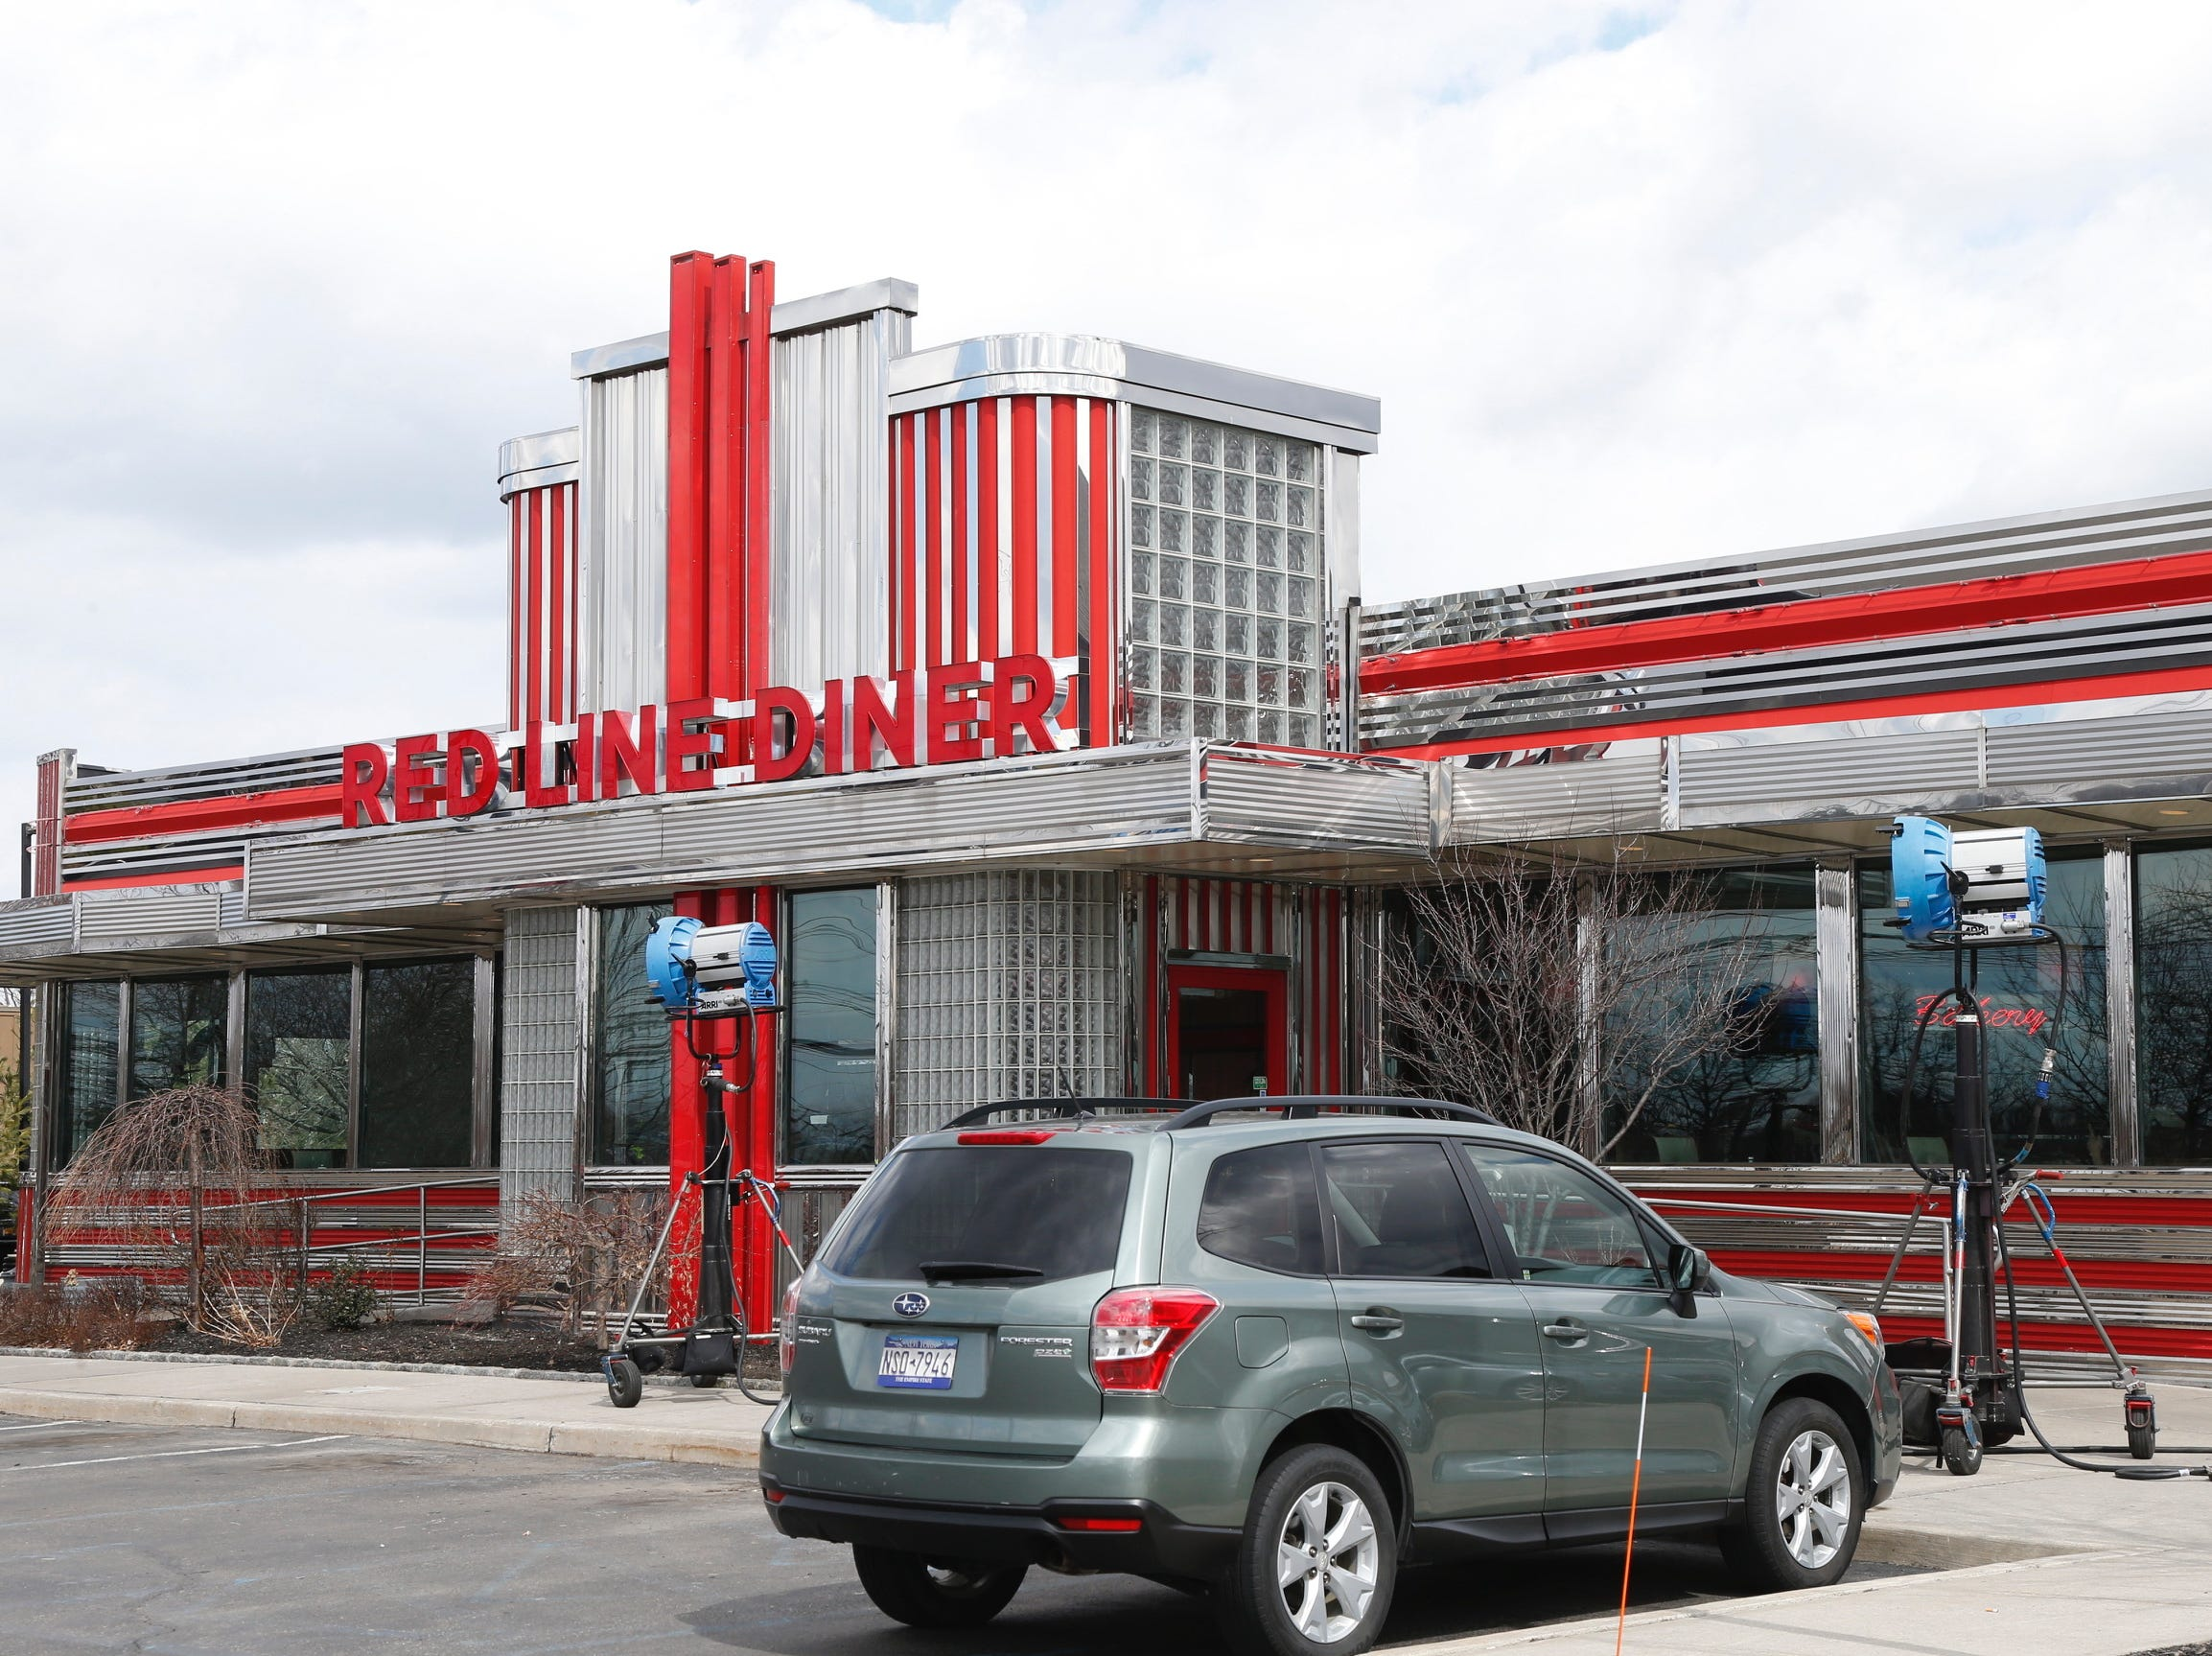 A movie filmed at the Red Line Diner on Tuesday.